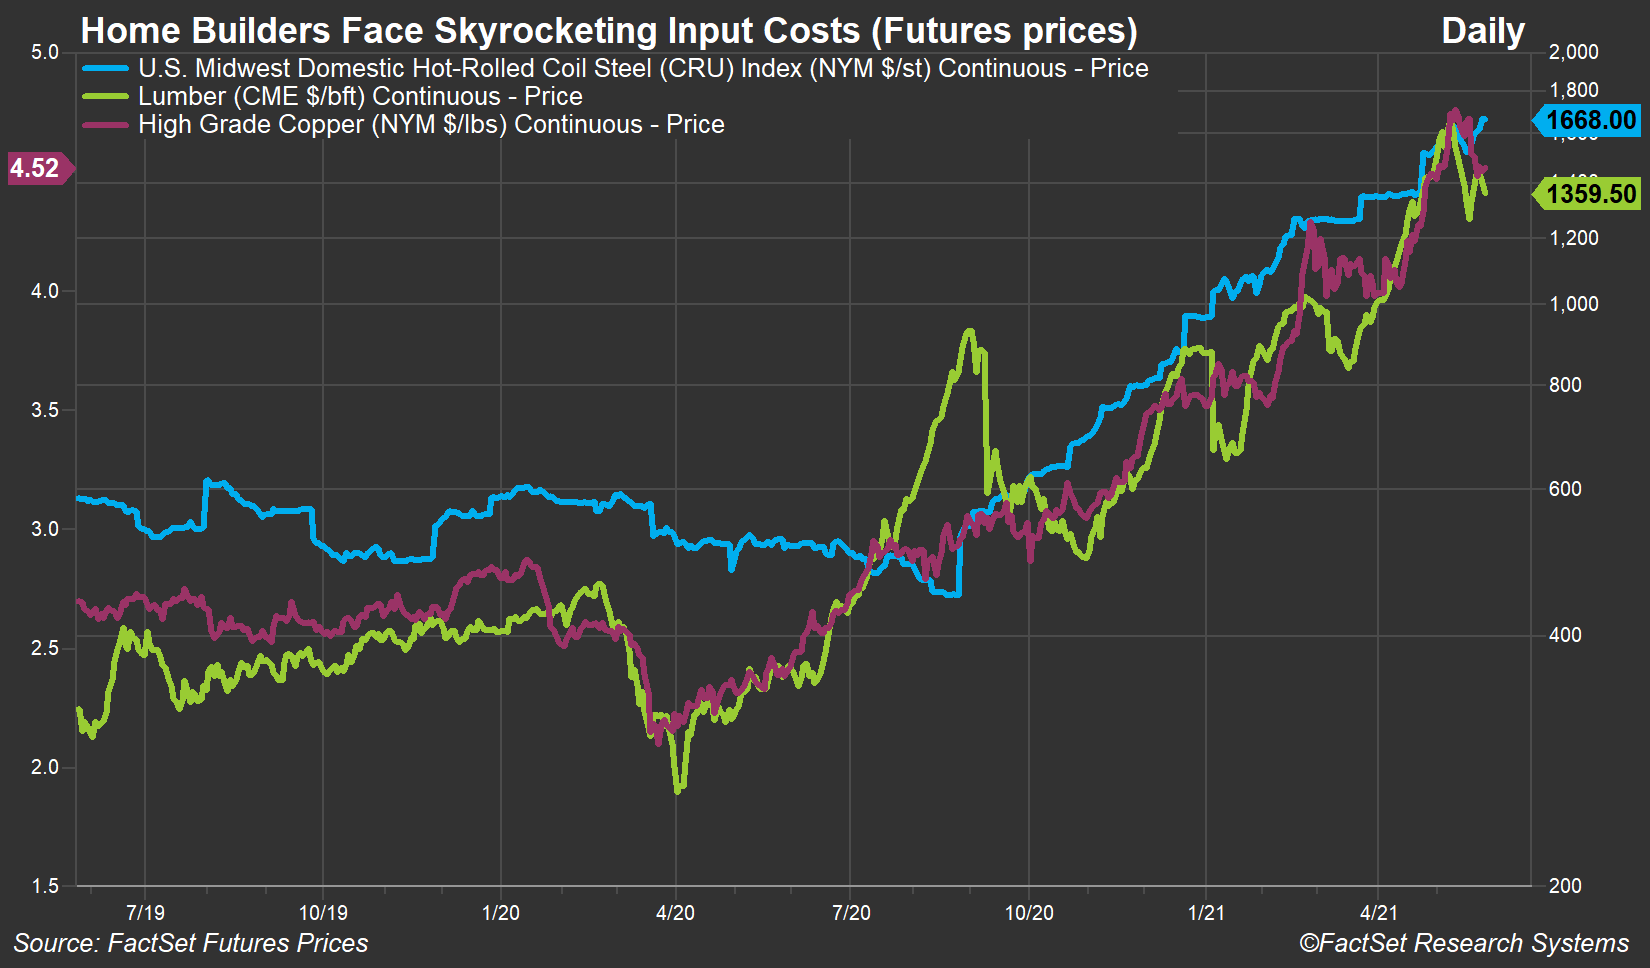 Futures Prices for Construction Inputs